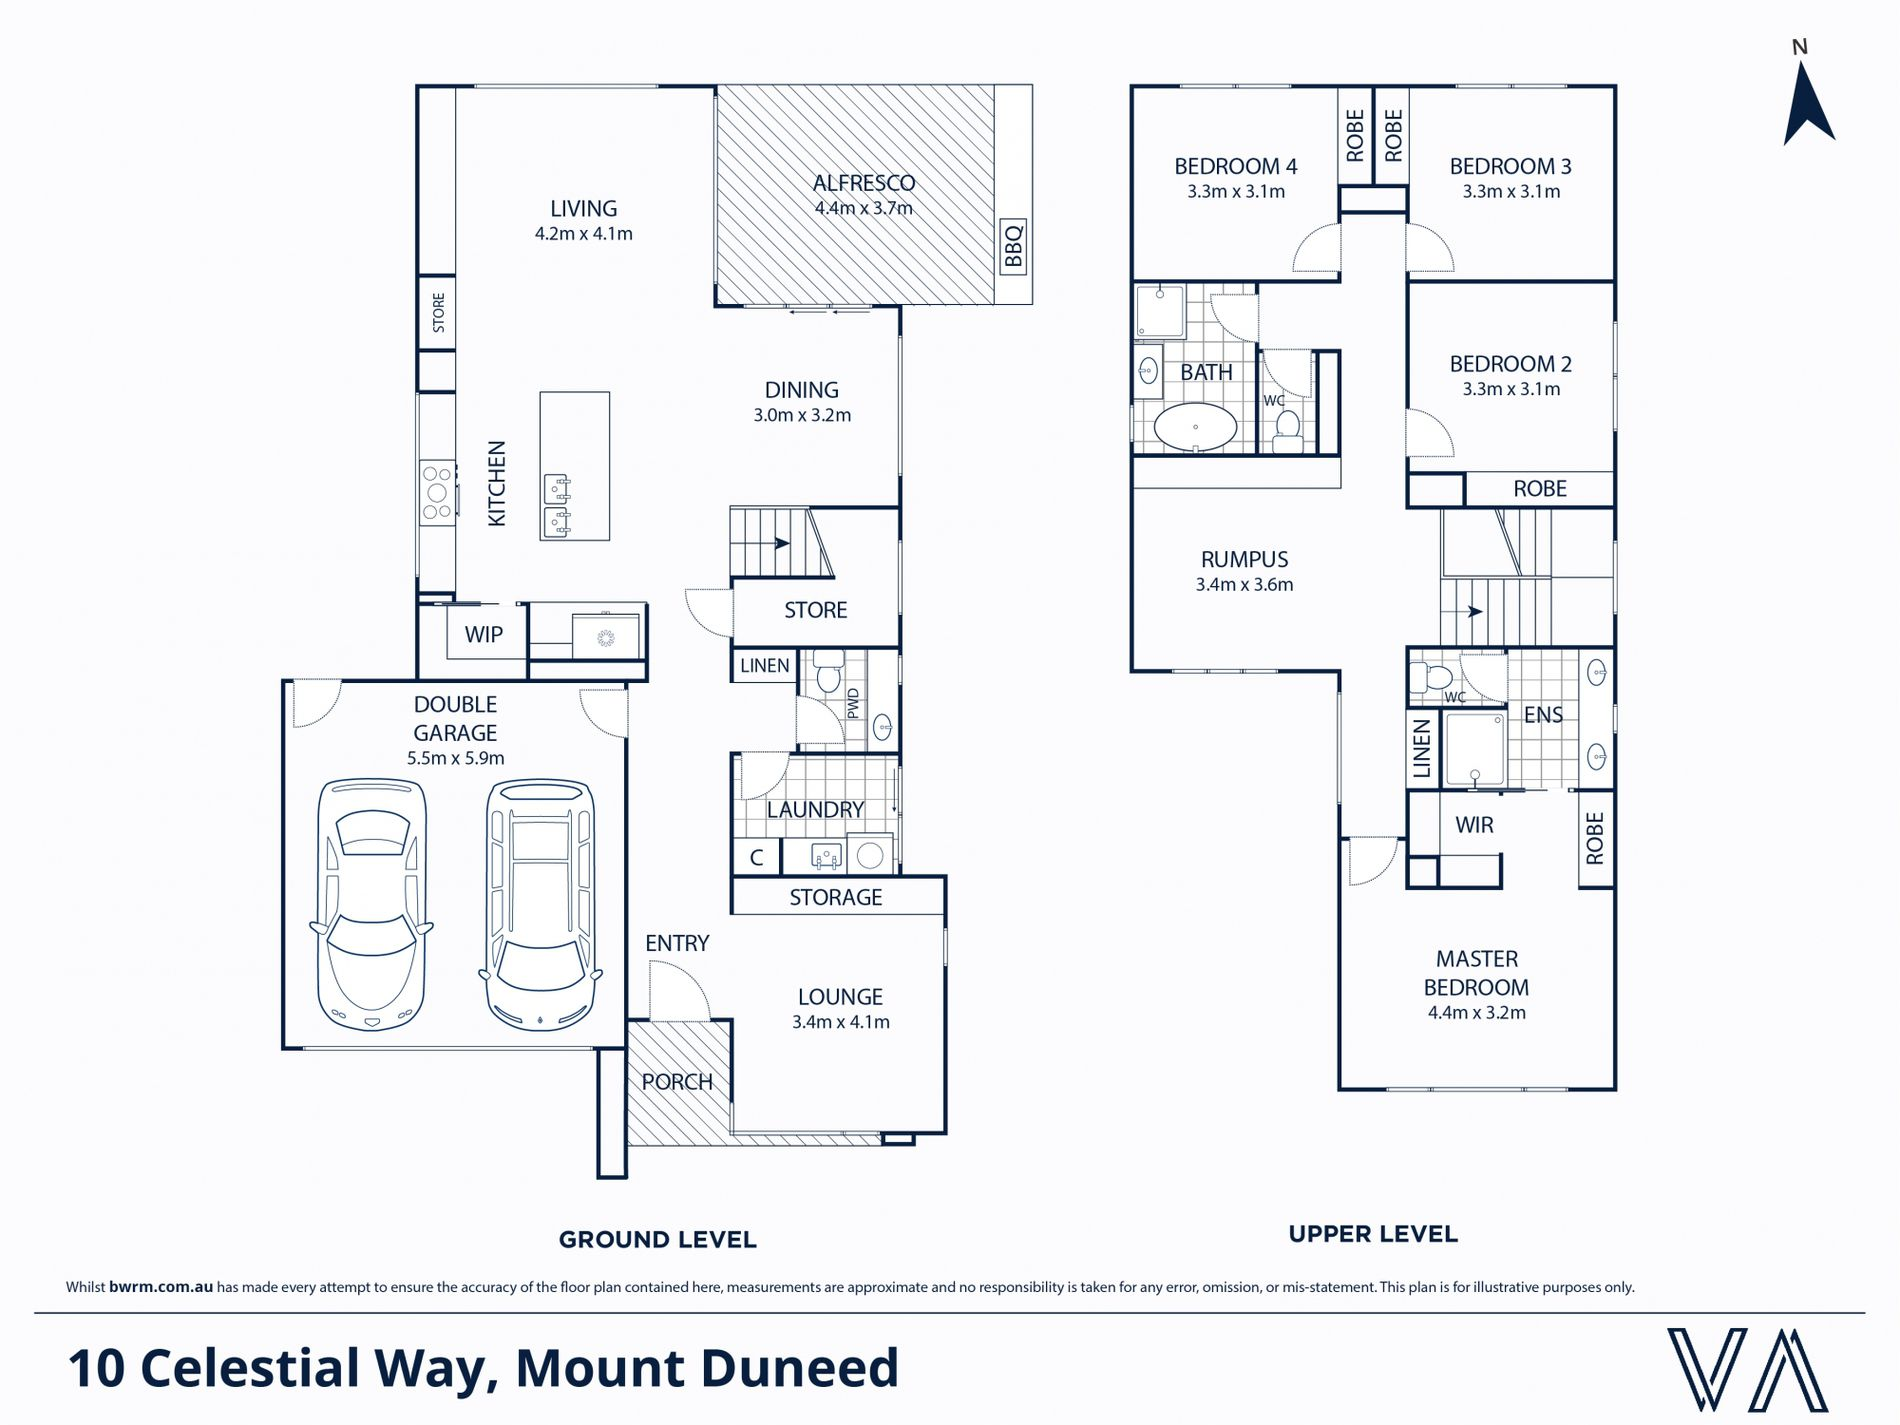 10 Celestial Way, Mount Duneed